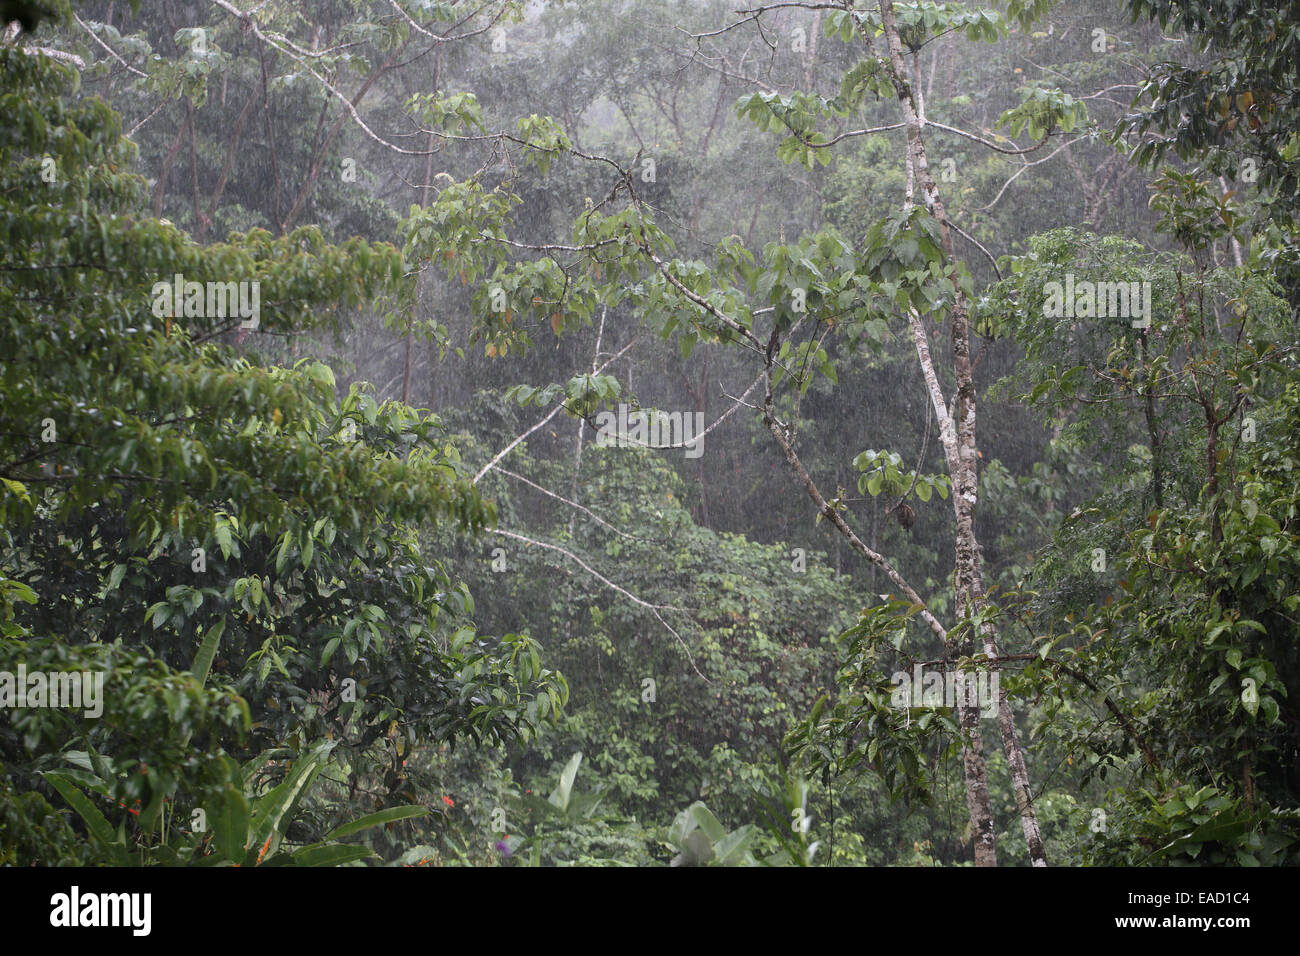 Raining in forest in Bosque Del Rio Tigre, Osa Peninsula Costa Rica - Stock Image